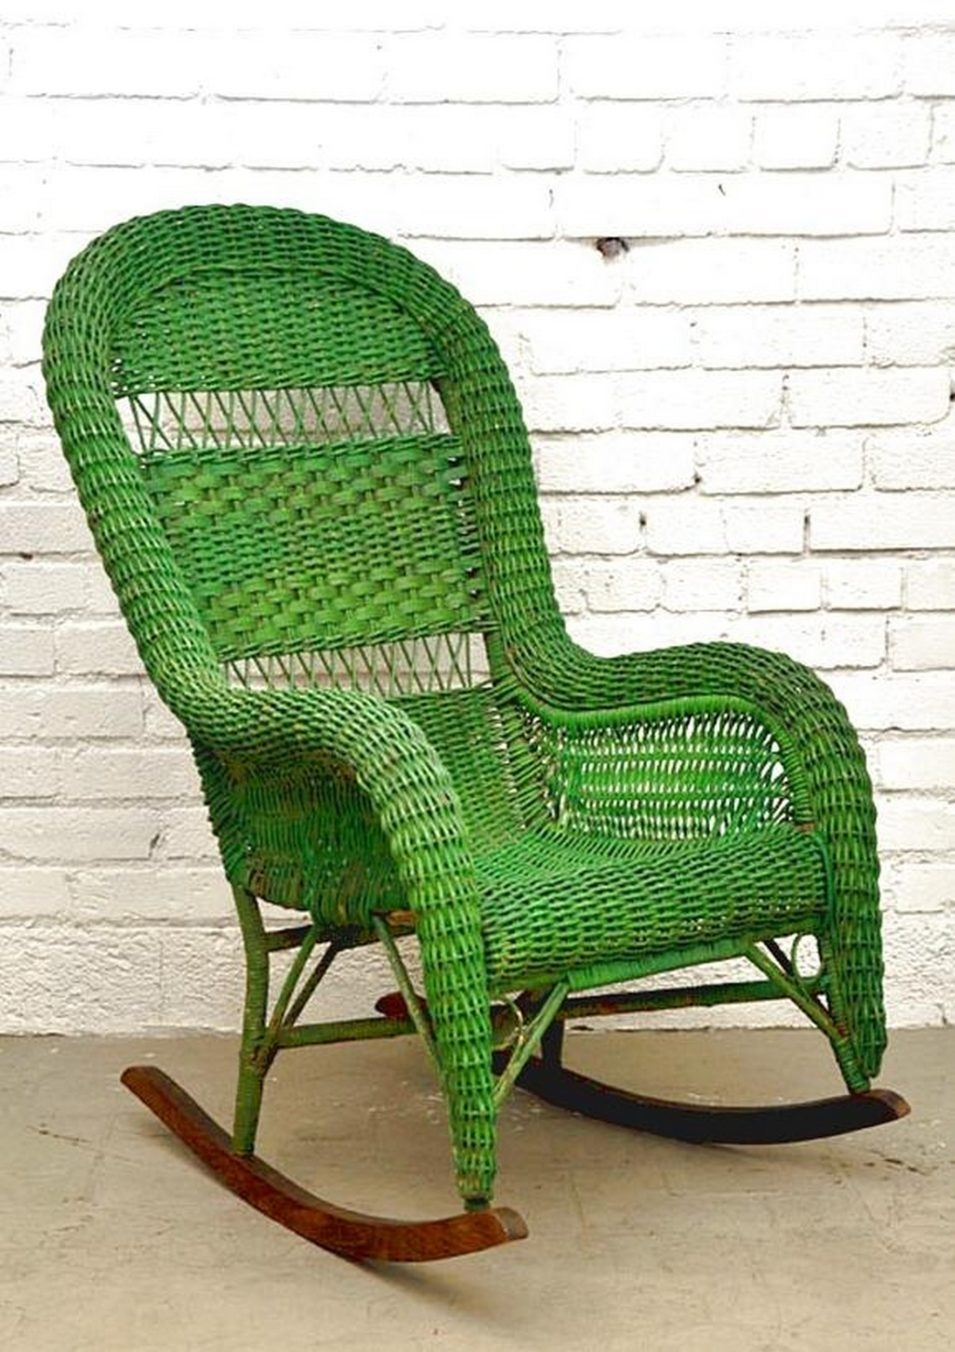 Vintage Wicker Rocking Chair With Green Color | Nytexas Within Vintage Wicker Rocking Chairs (#11 of 15)